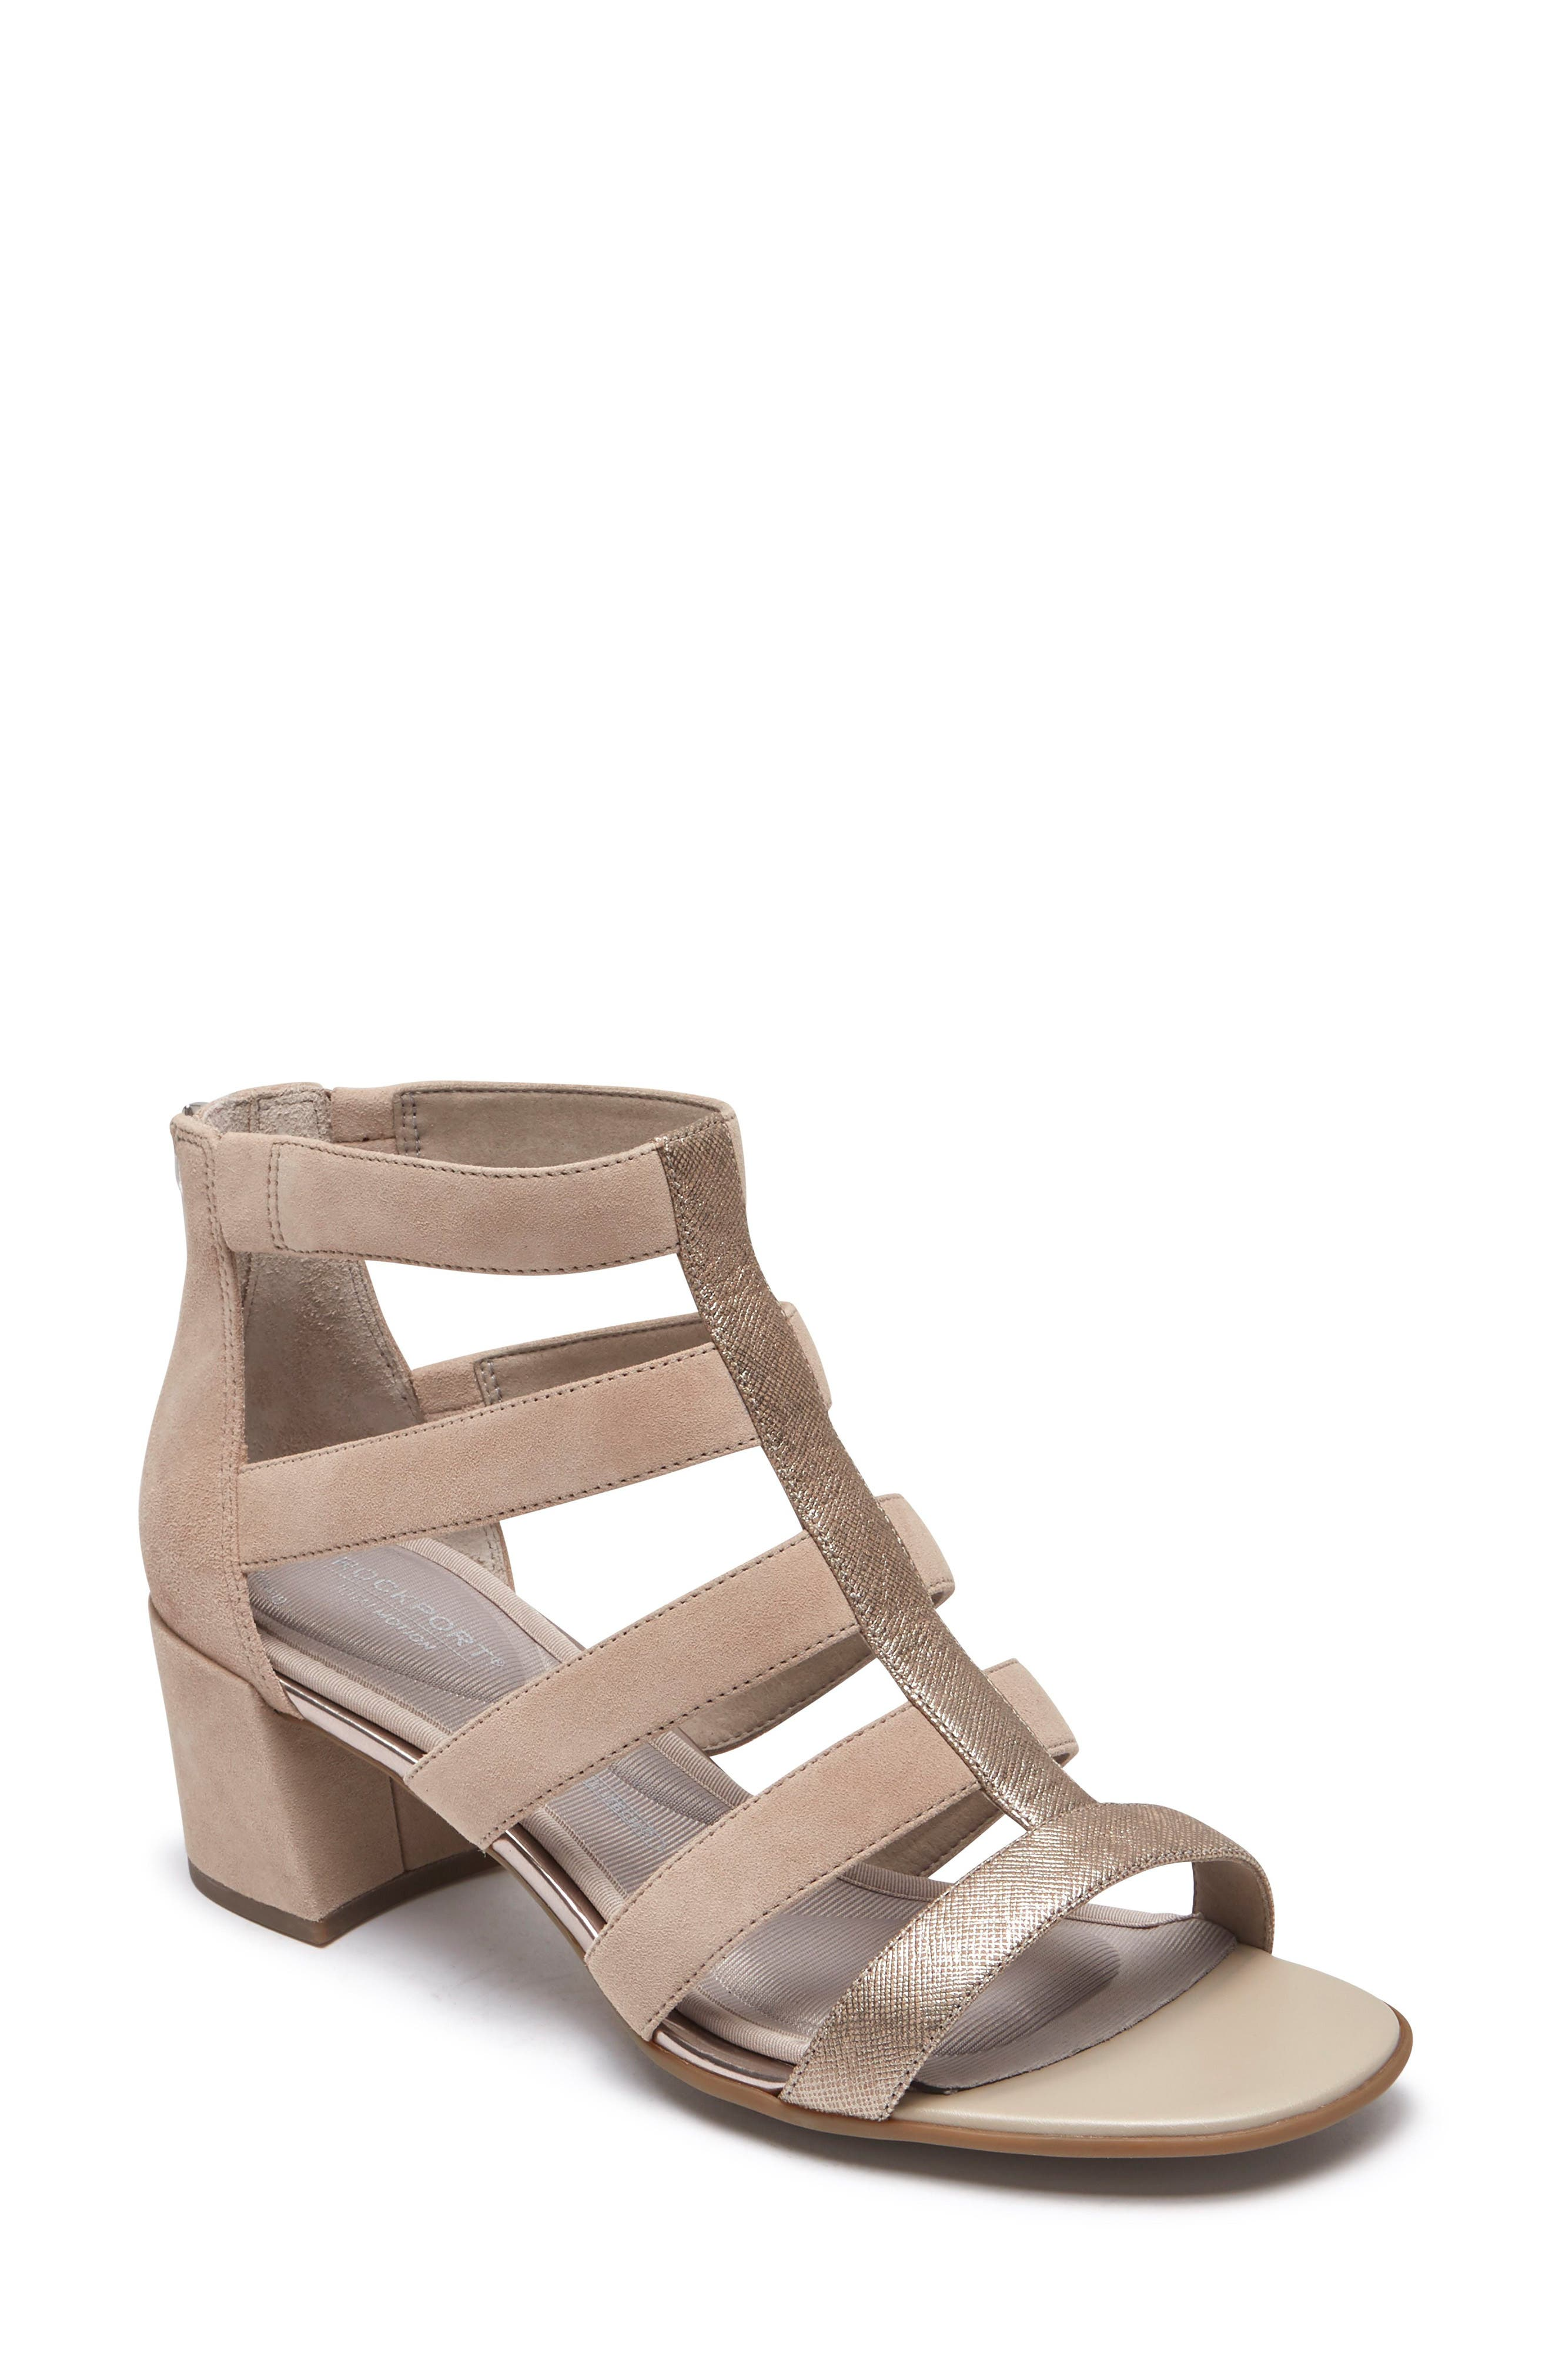 ROCKPORT,                             Total Motion Alaina Luxe Cage Sandal,                             Main thumbnail 1, color,                             DOVE SUEDE